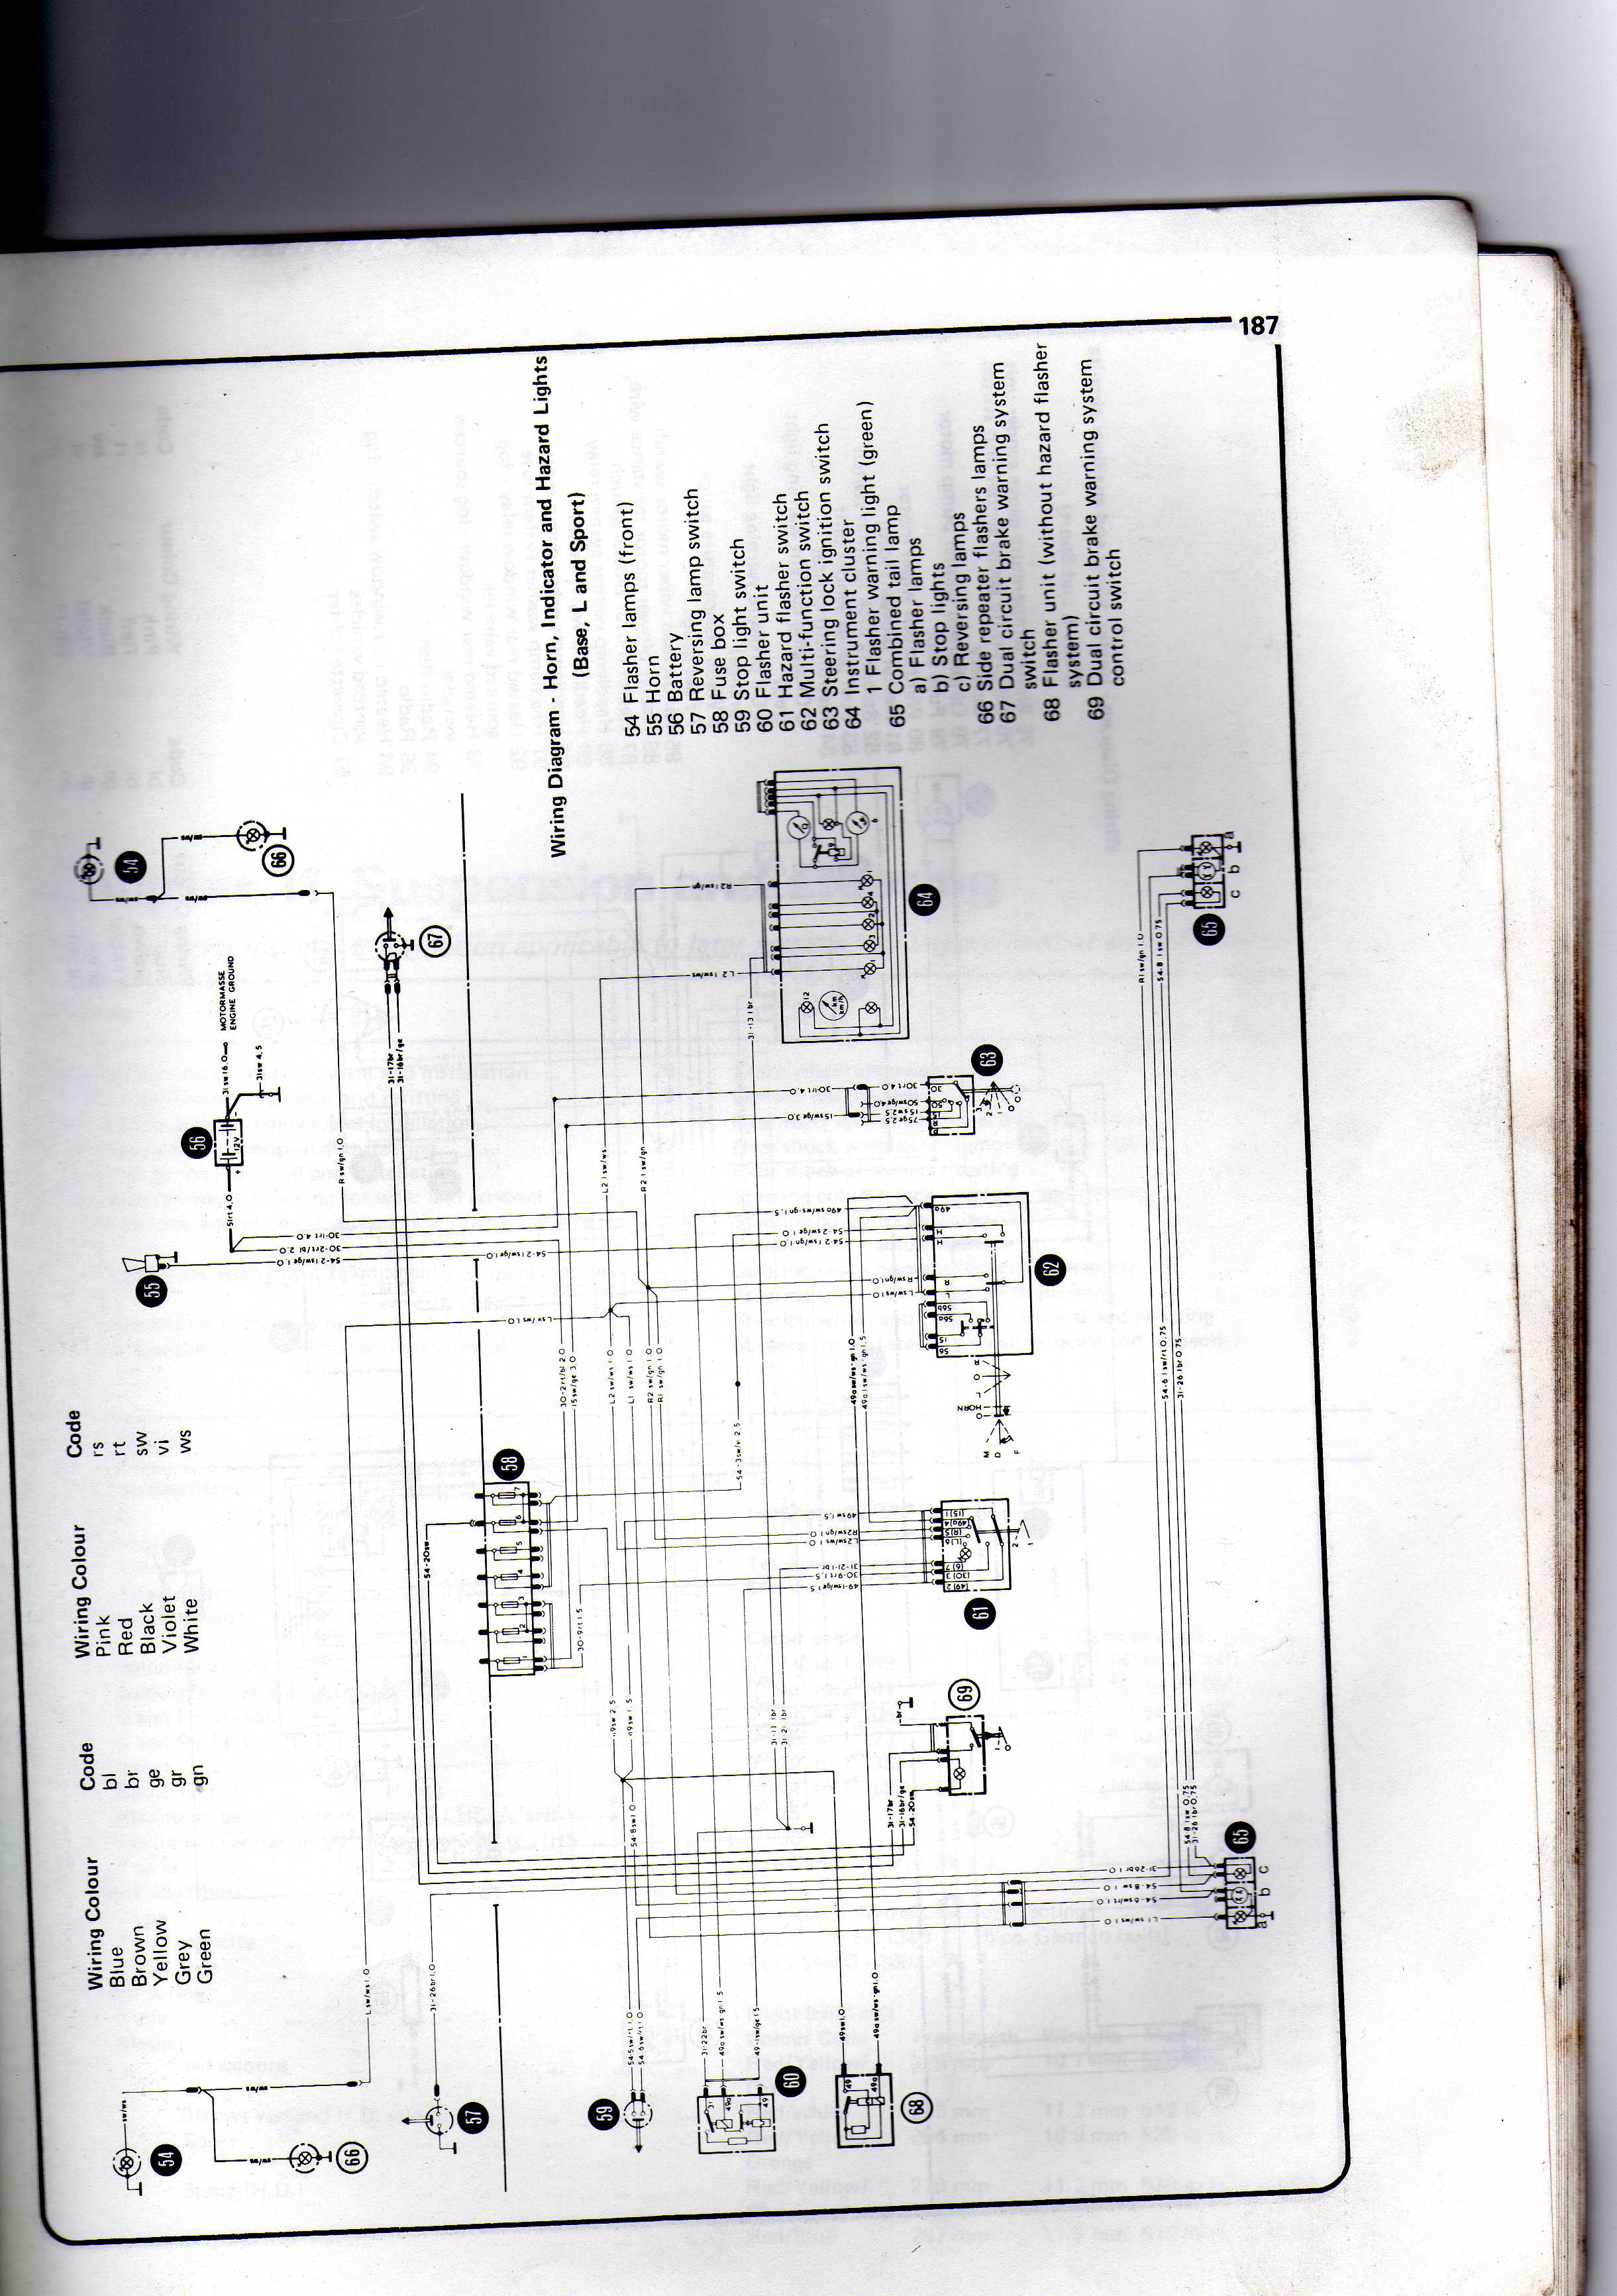 Escort Wiring Diagram 21 Images Diagrams Ford Xr3 Mk2 Diagam 2010101120239002392img003 At